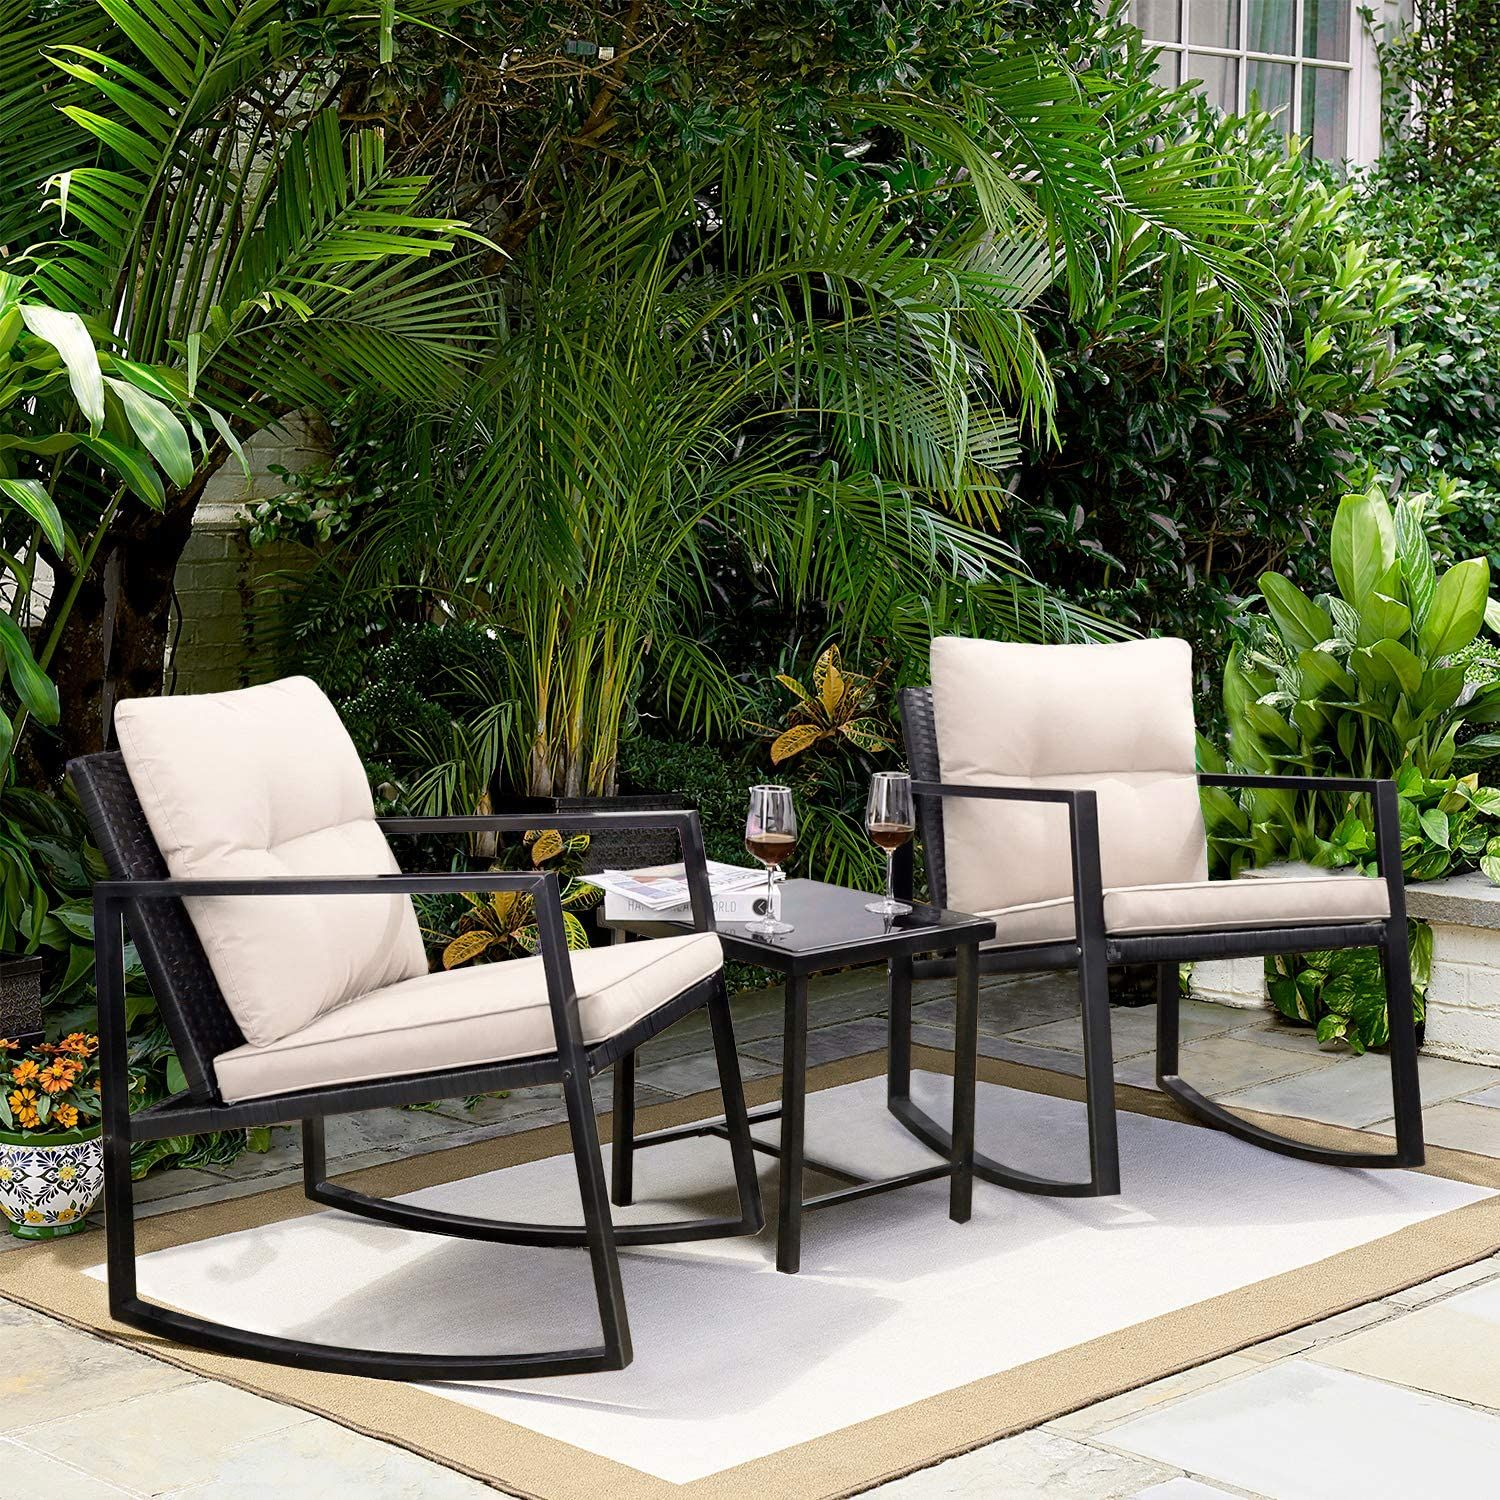 Jaz Metal 4 Seater Coffee Table Set Coffee Table Setting Garden Furniture Sets Outdoor Furniture Sets [ 1500 x 1500 Pixel ]